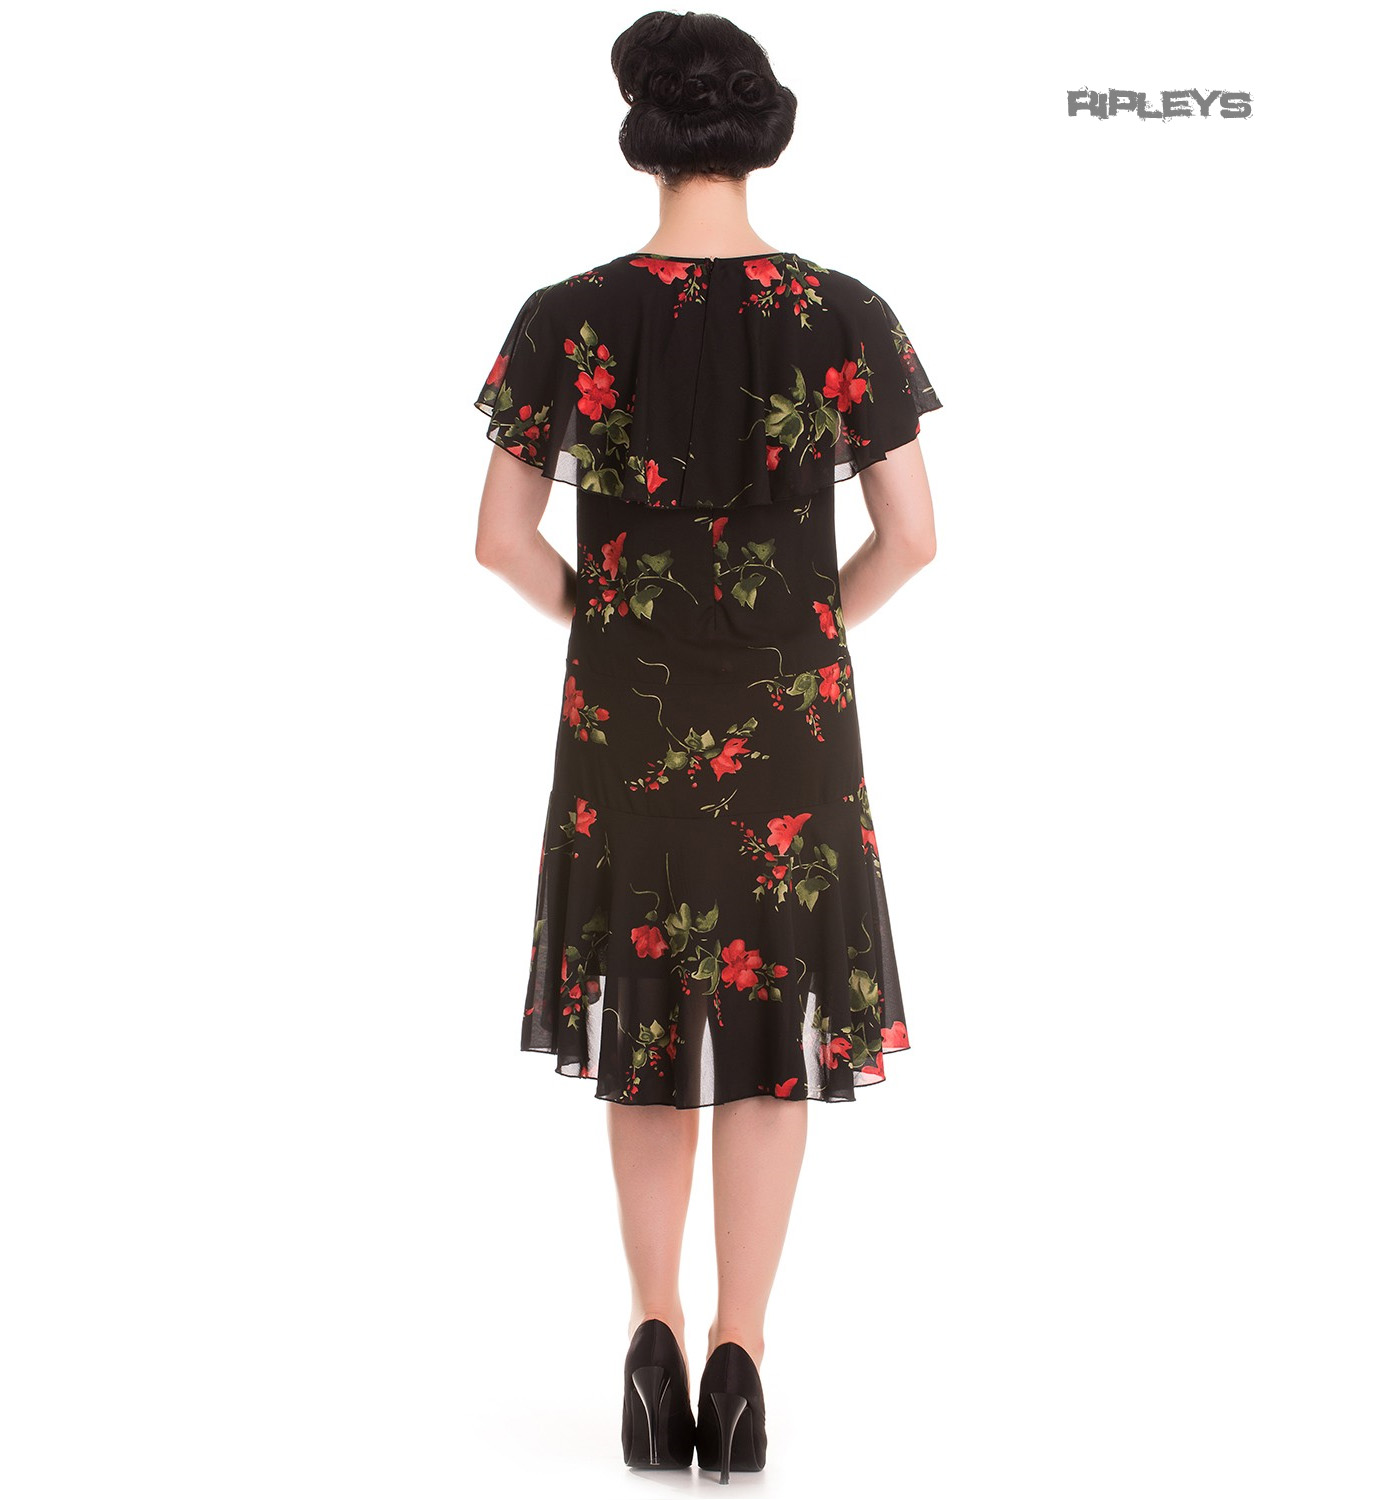 Hell-Bunny-20s-40s-Black-Flapper-Cocktail-Party-Dress-LILY-Floral-Black-All-Size thumbnail 8